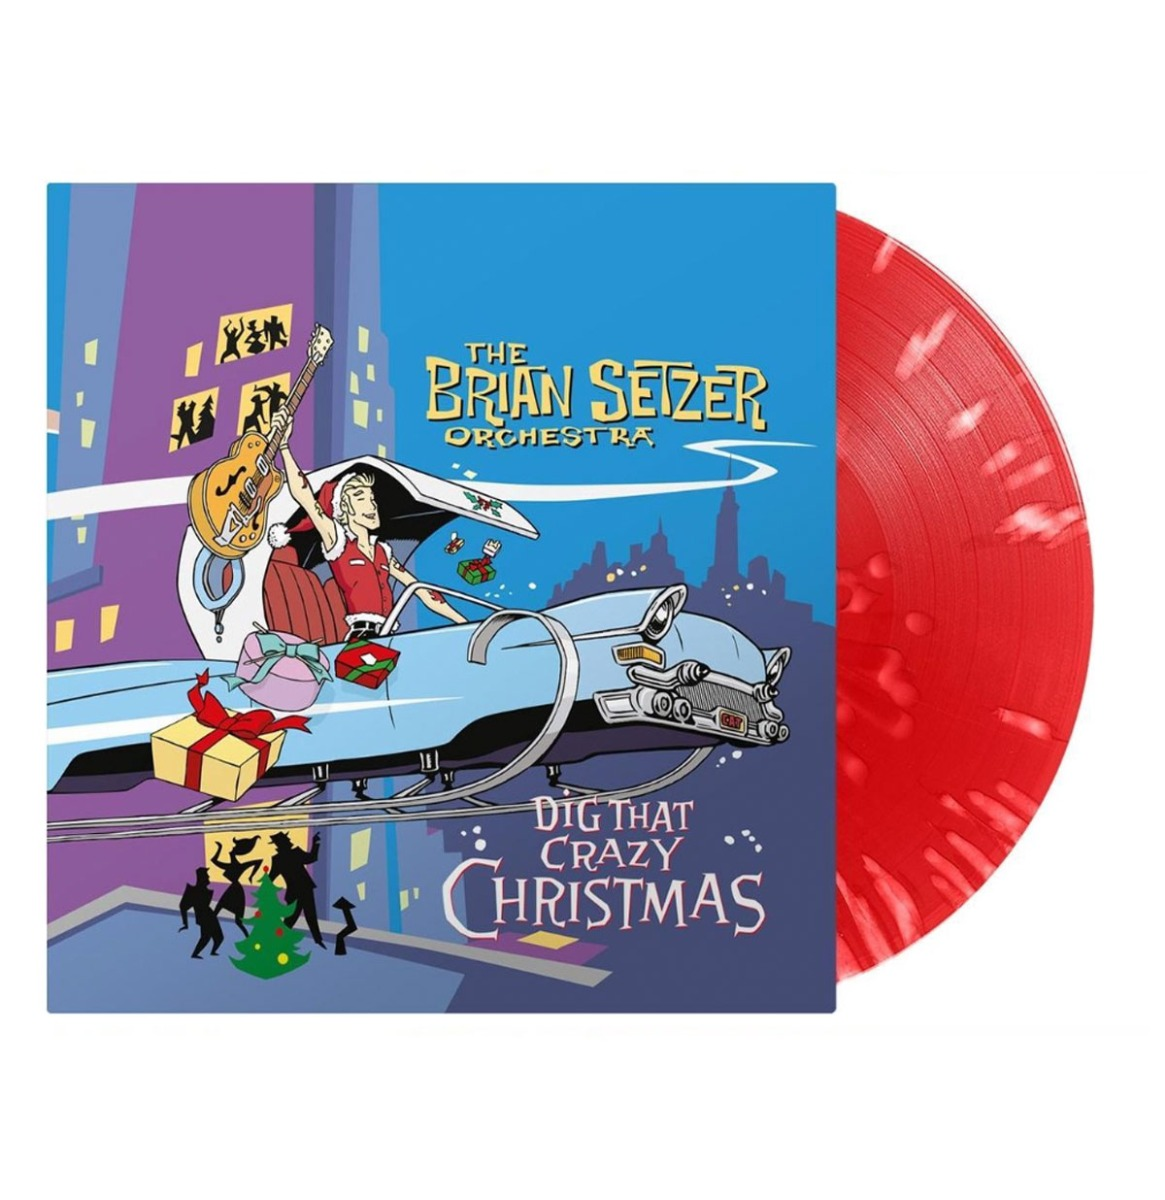 The Brian Setzer Orchestra - Dig That Crazy Christmas Special Edition Red / White Splatter Vinyl LP